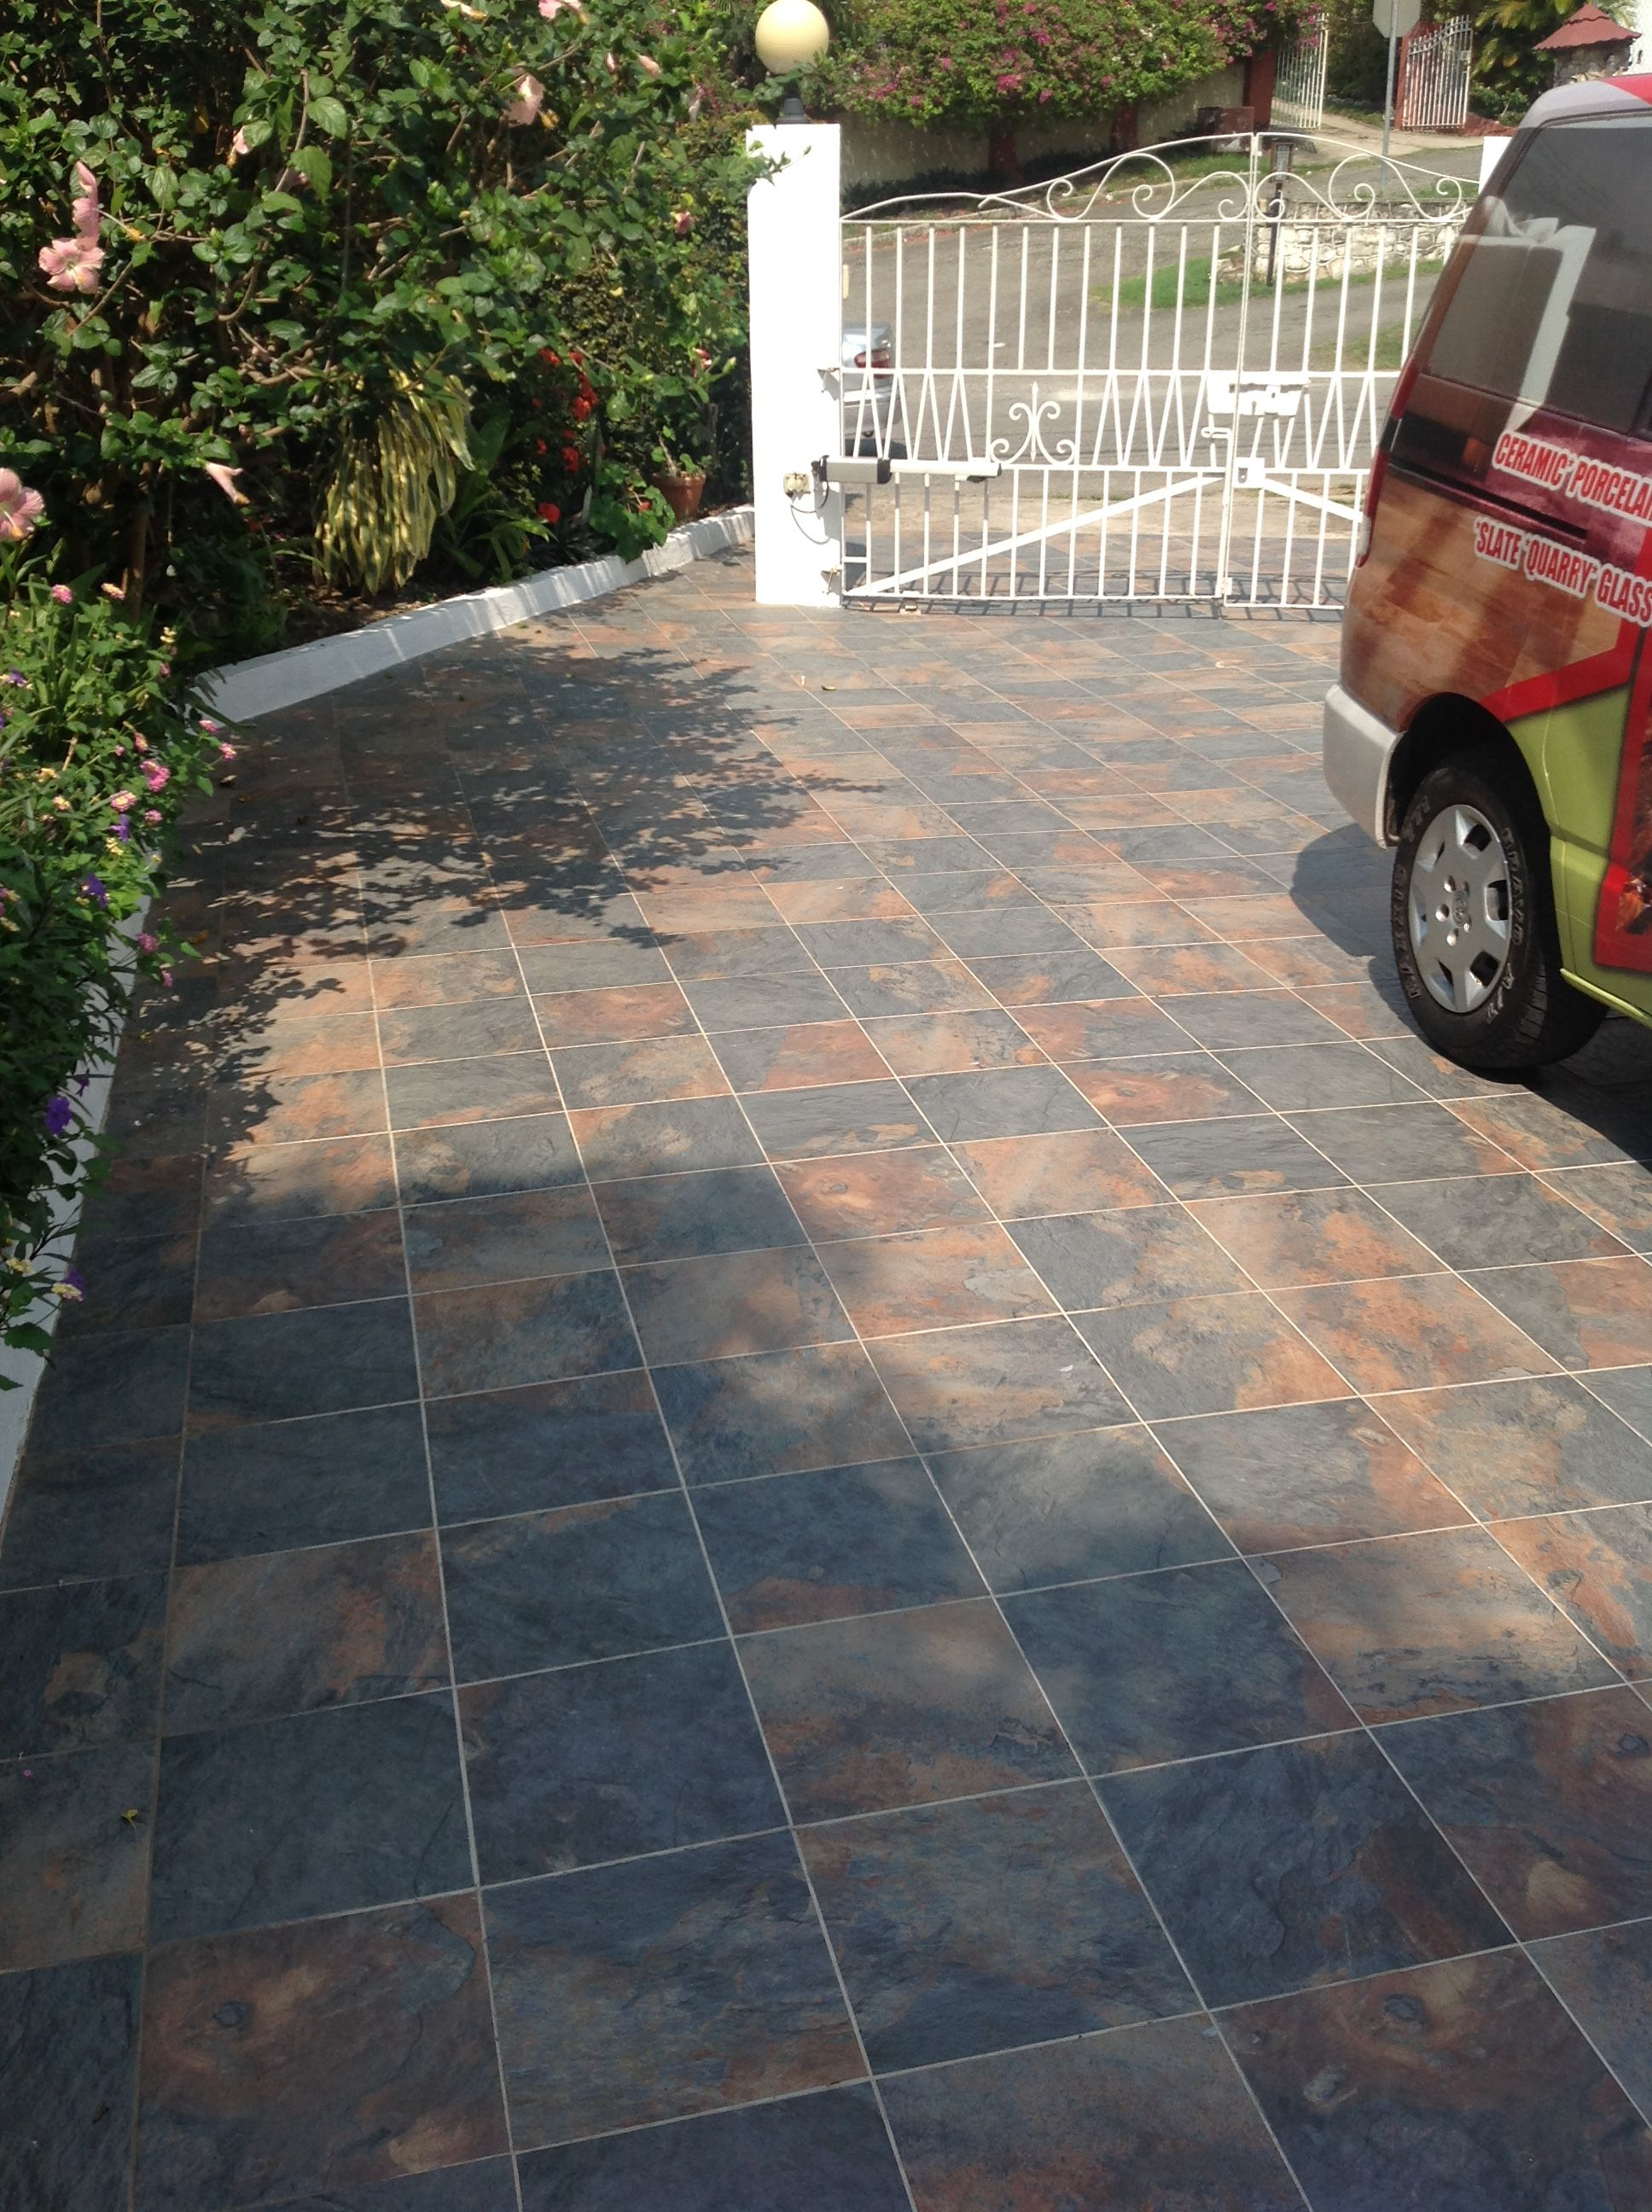 Ordinaire Slate Look Outdoor Tile. #driveway #patio #ceramic #tile #creative #jamaica  #homeimprovement